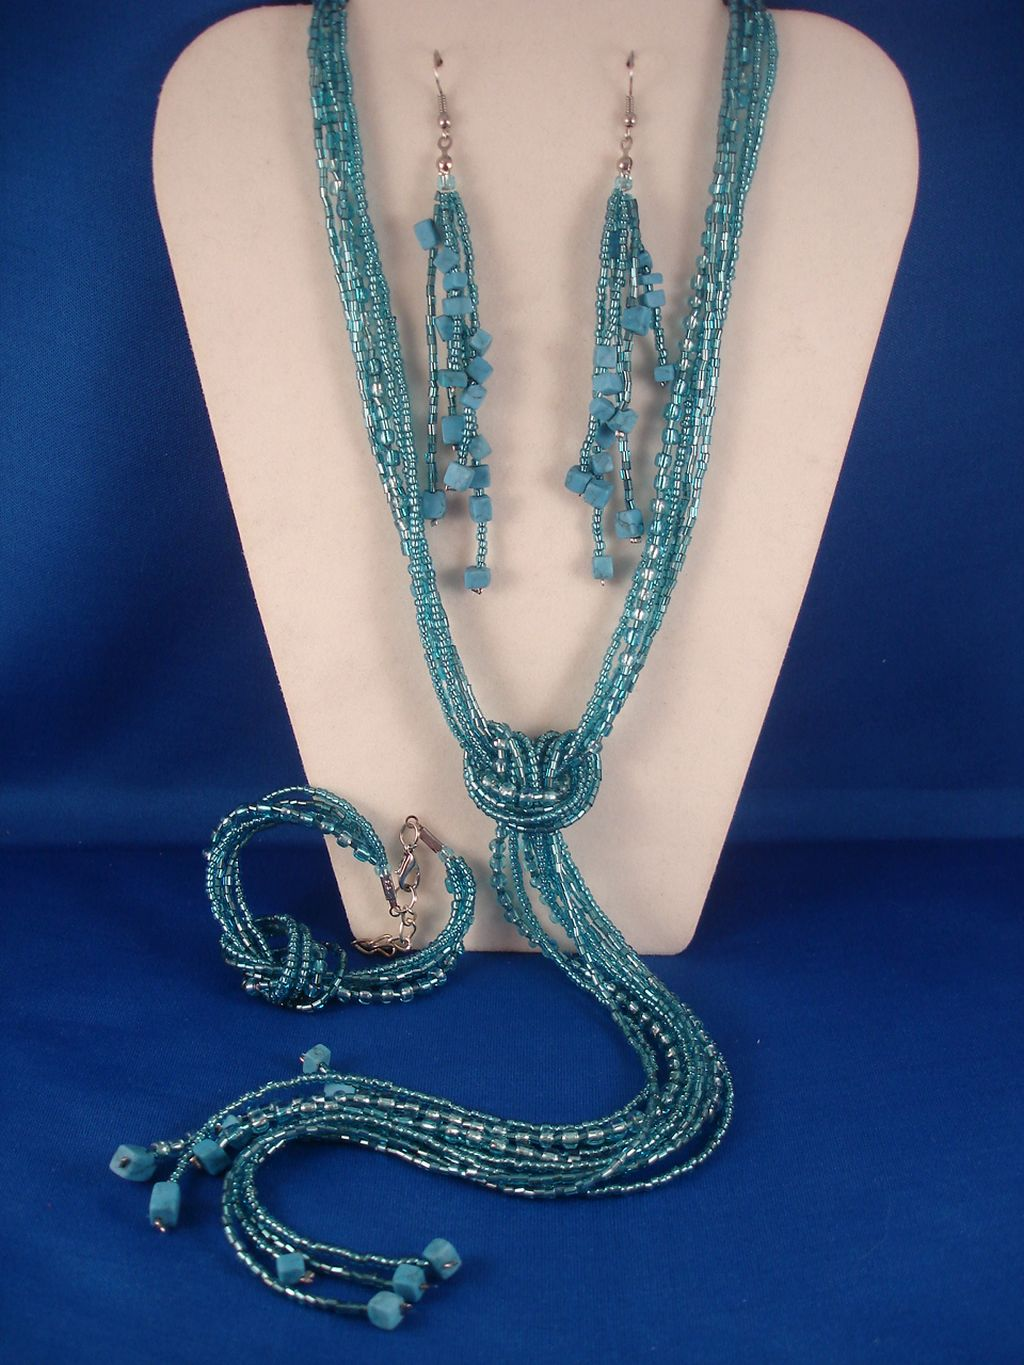 Turquoise Blue Beads & Genuine Stones Contemporary Jewelry Set of Necklace, Bracelet & Earrings